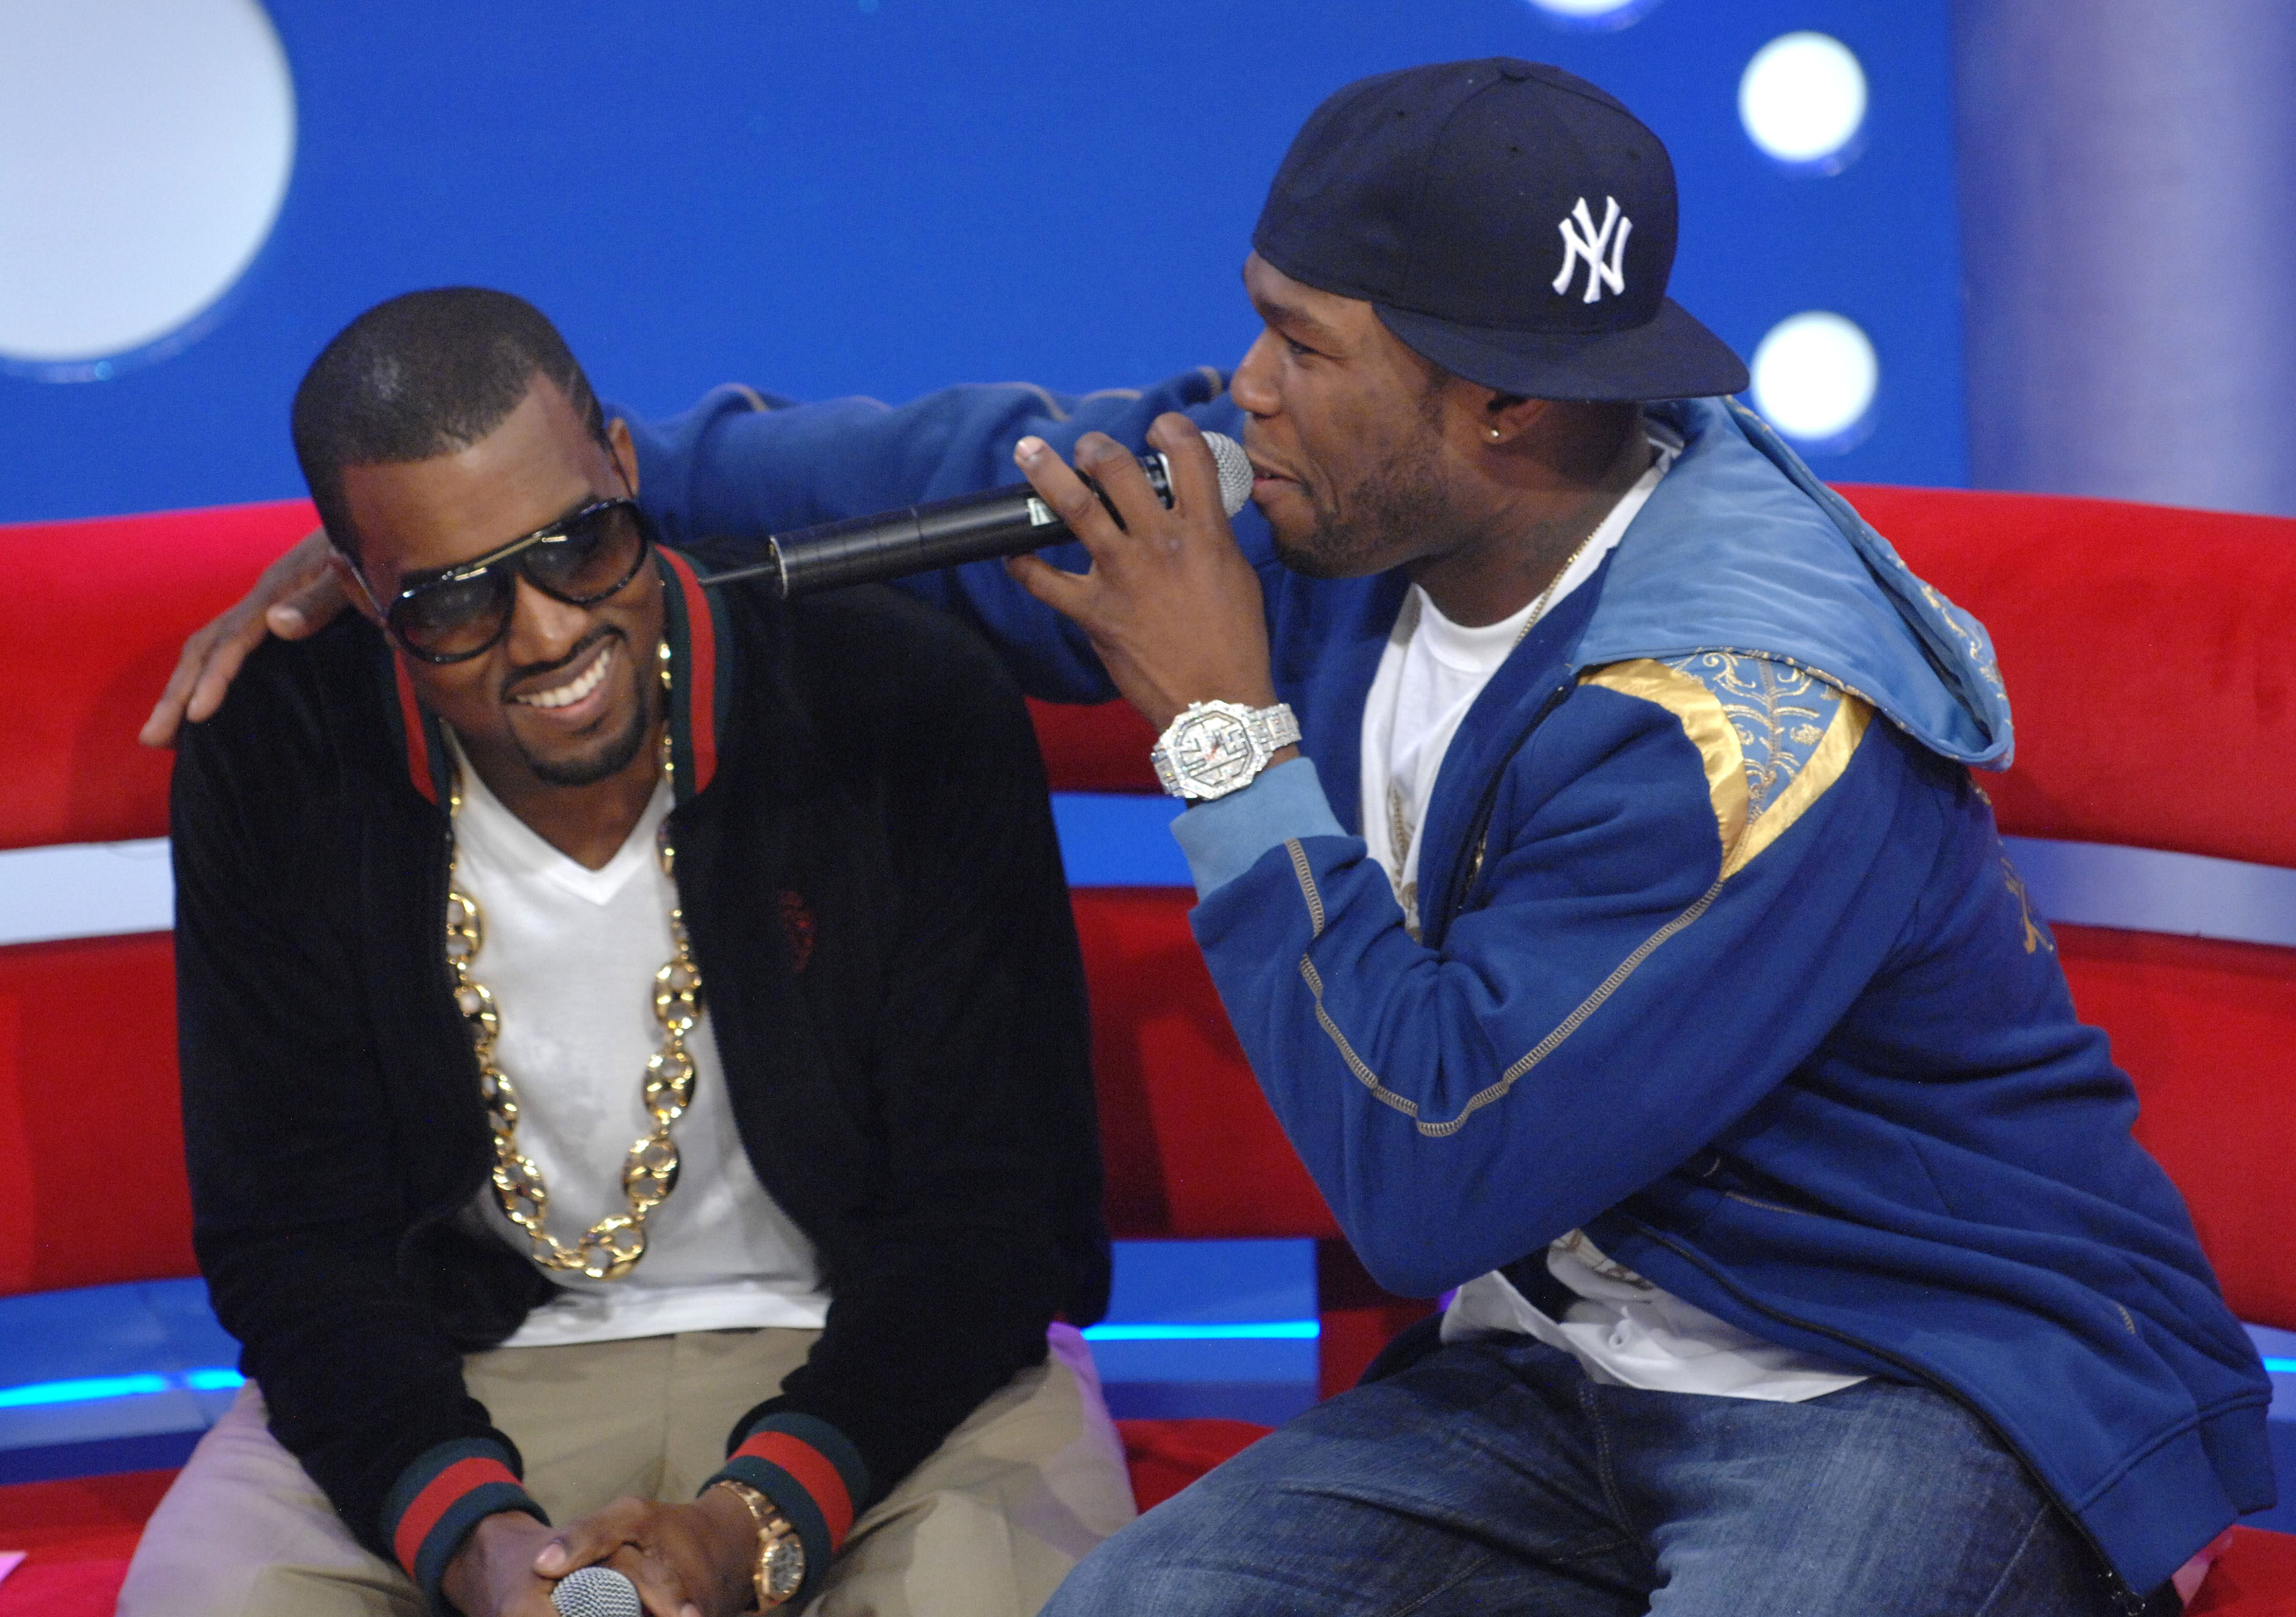 Kanye West and 50 Cent